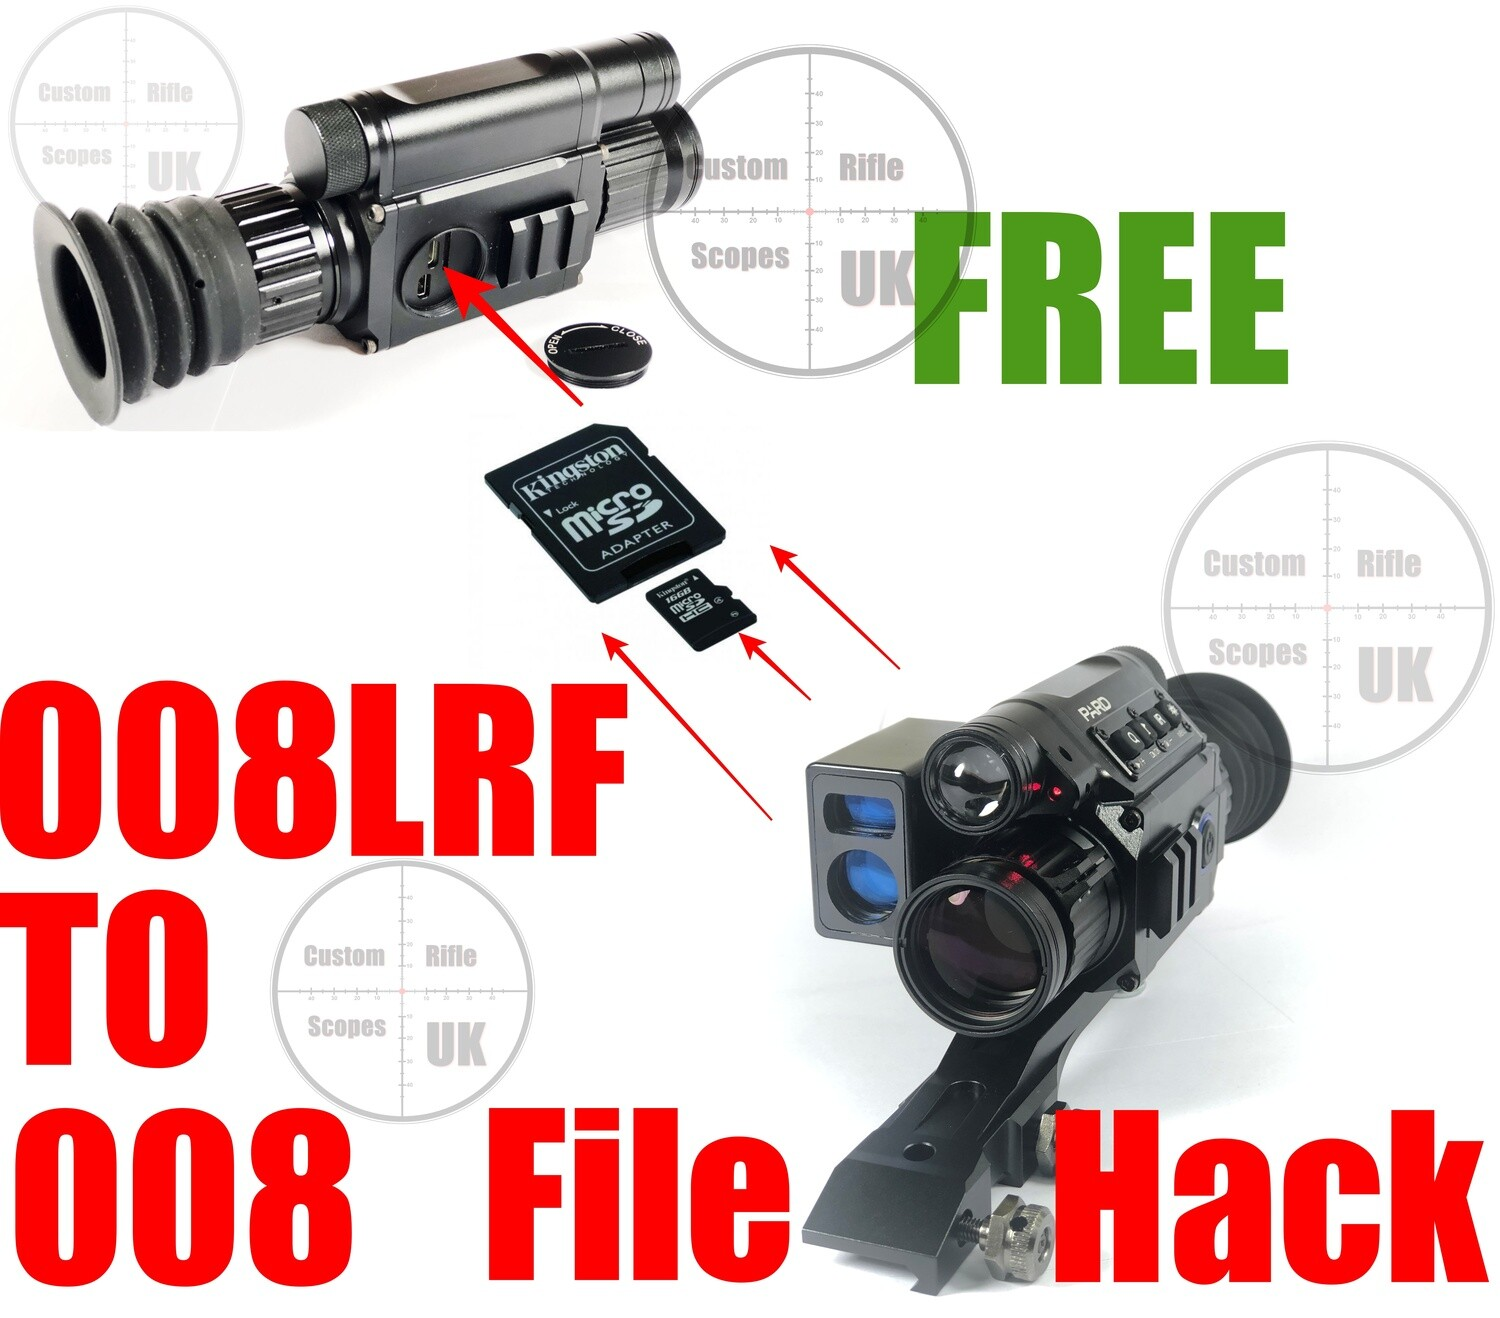 PARD NV008LRF to NV008 Hack, FREE software upgrade !